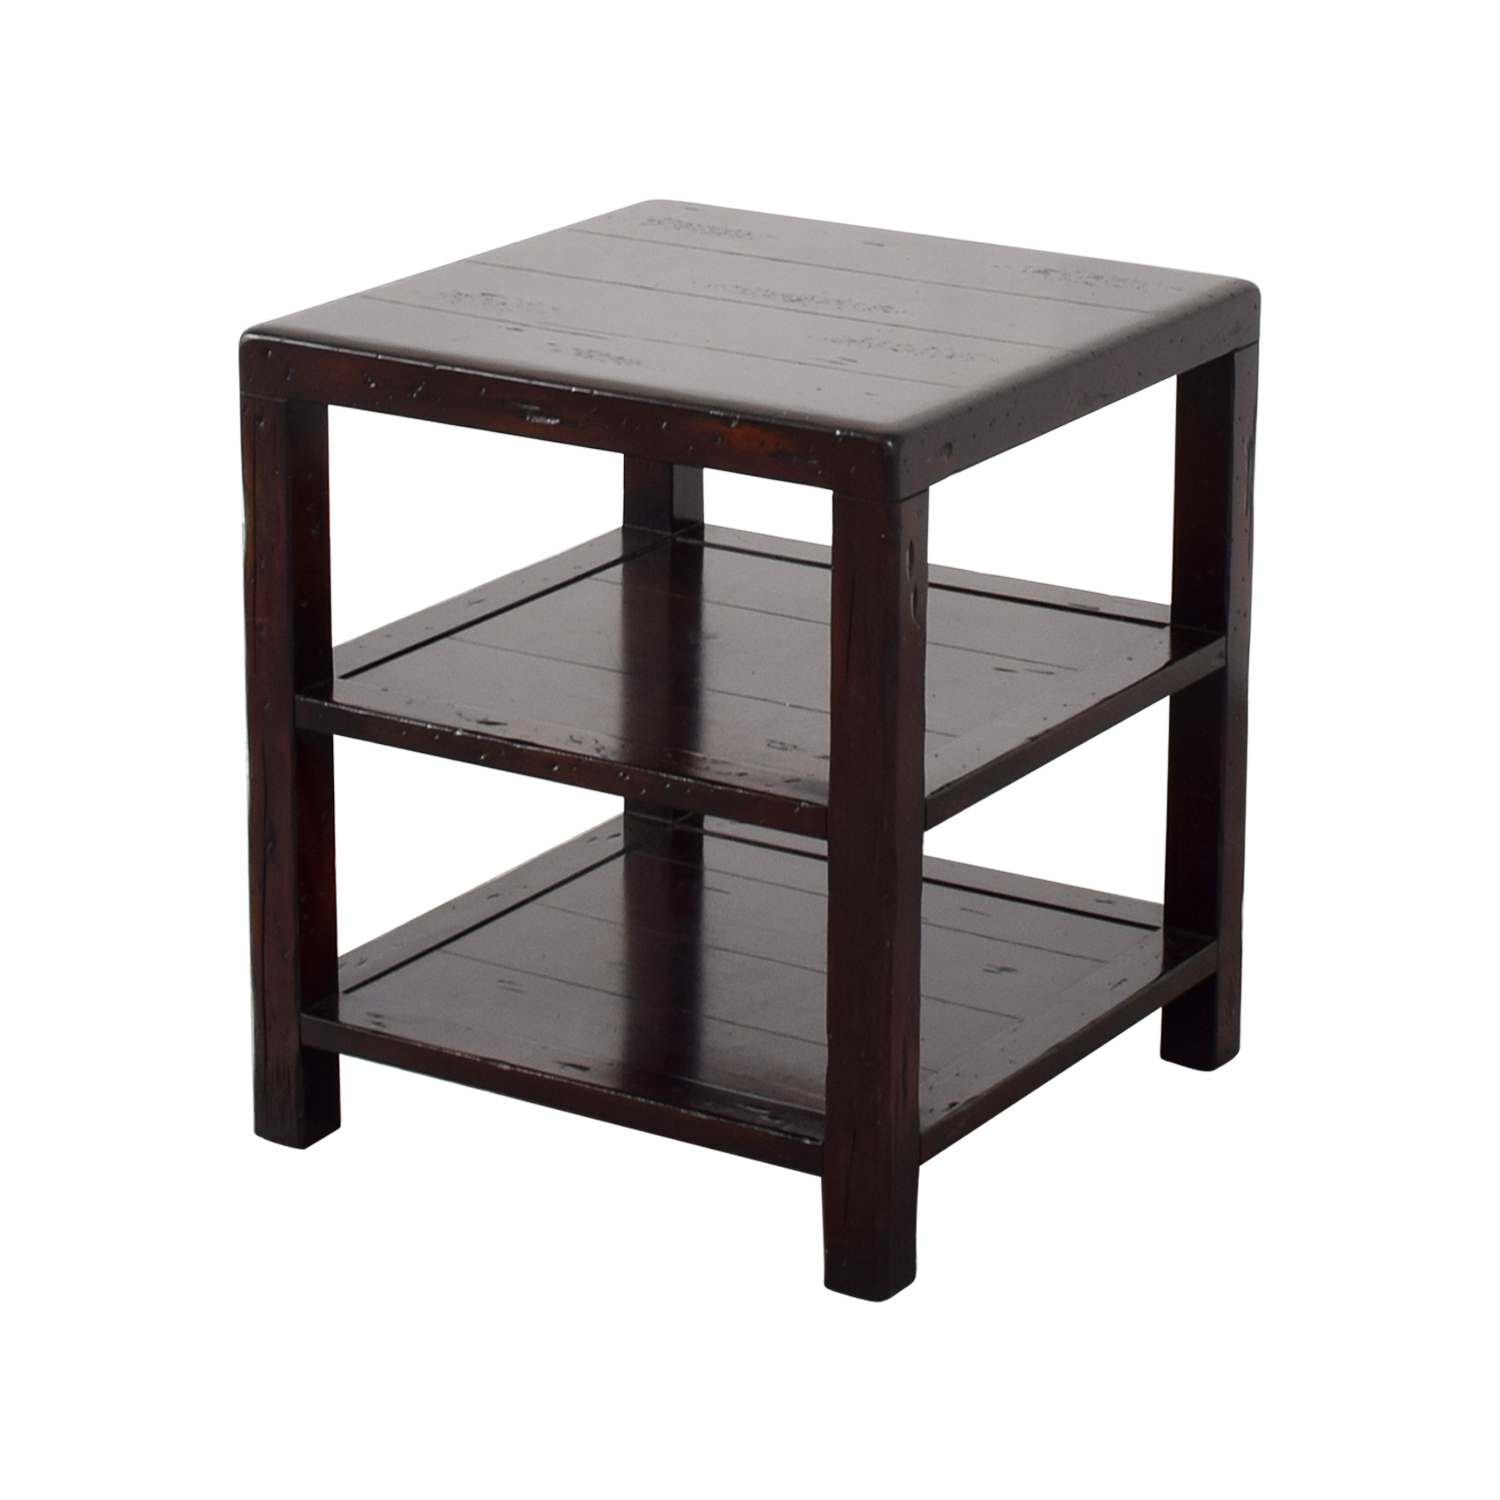 90 off pottery barn pottery barn square side table tables. Black Bedroom Furniture Sets. Home Design Ideas